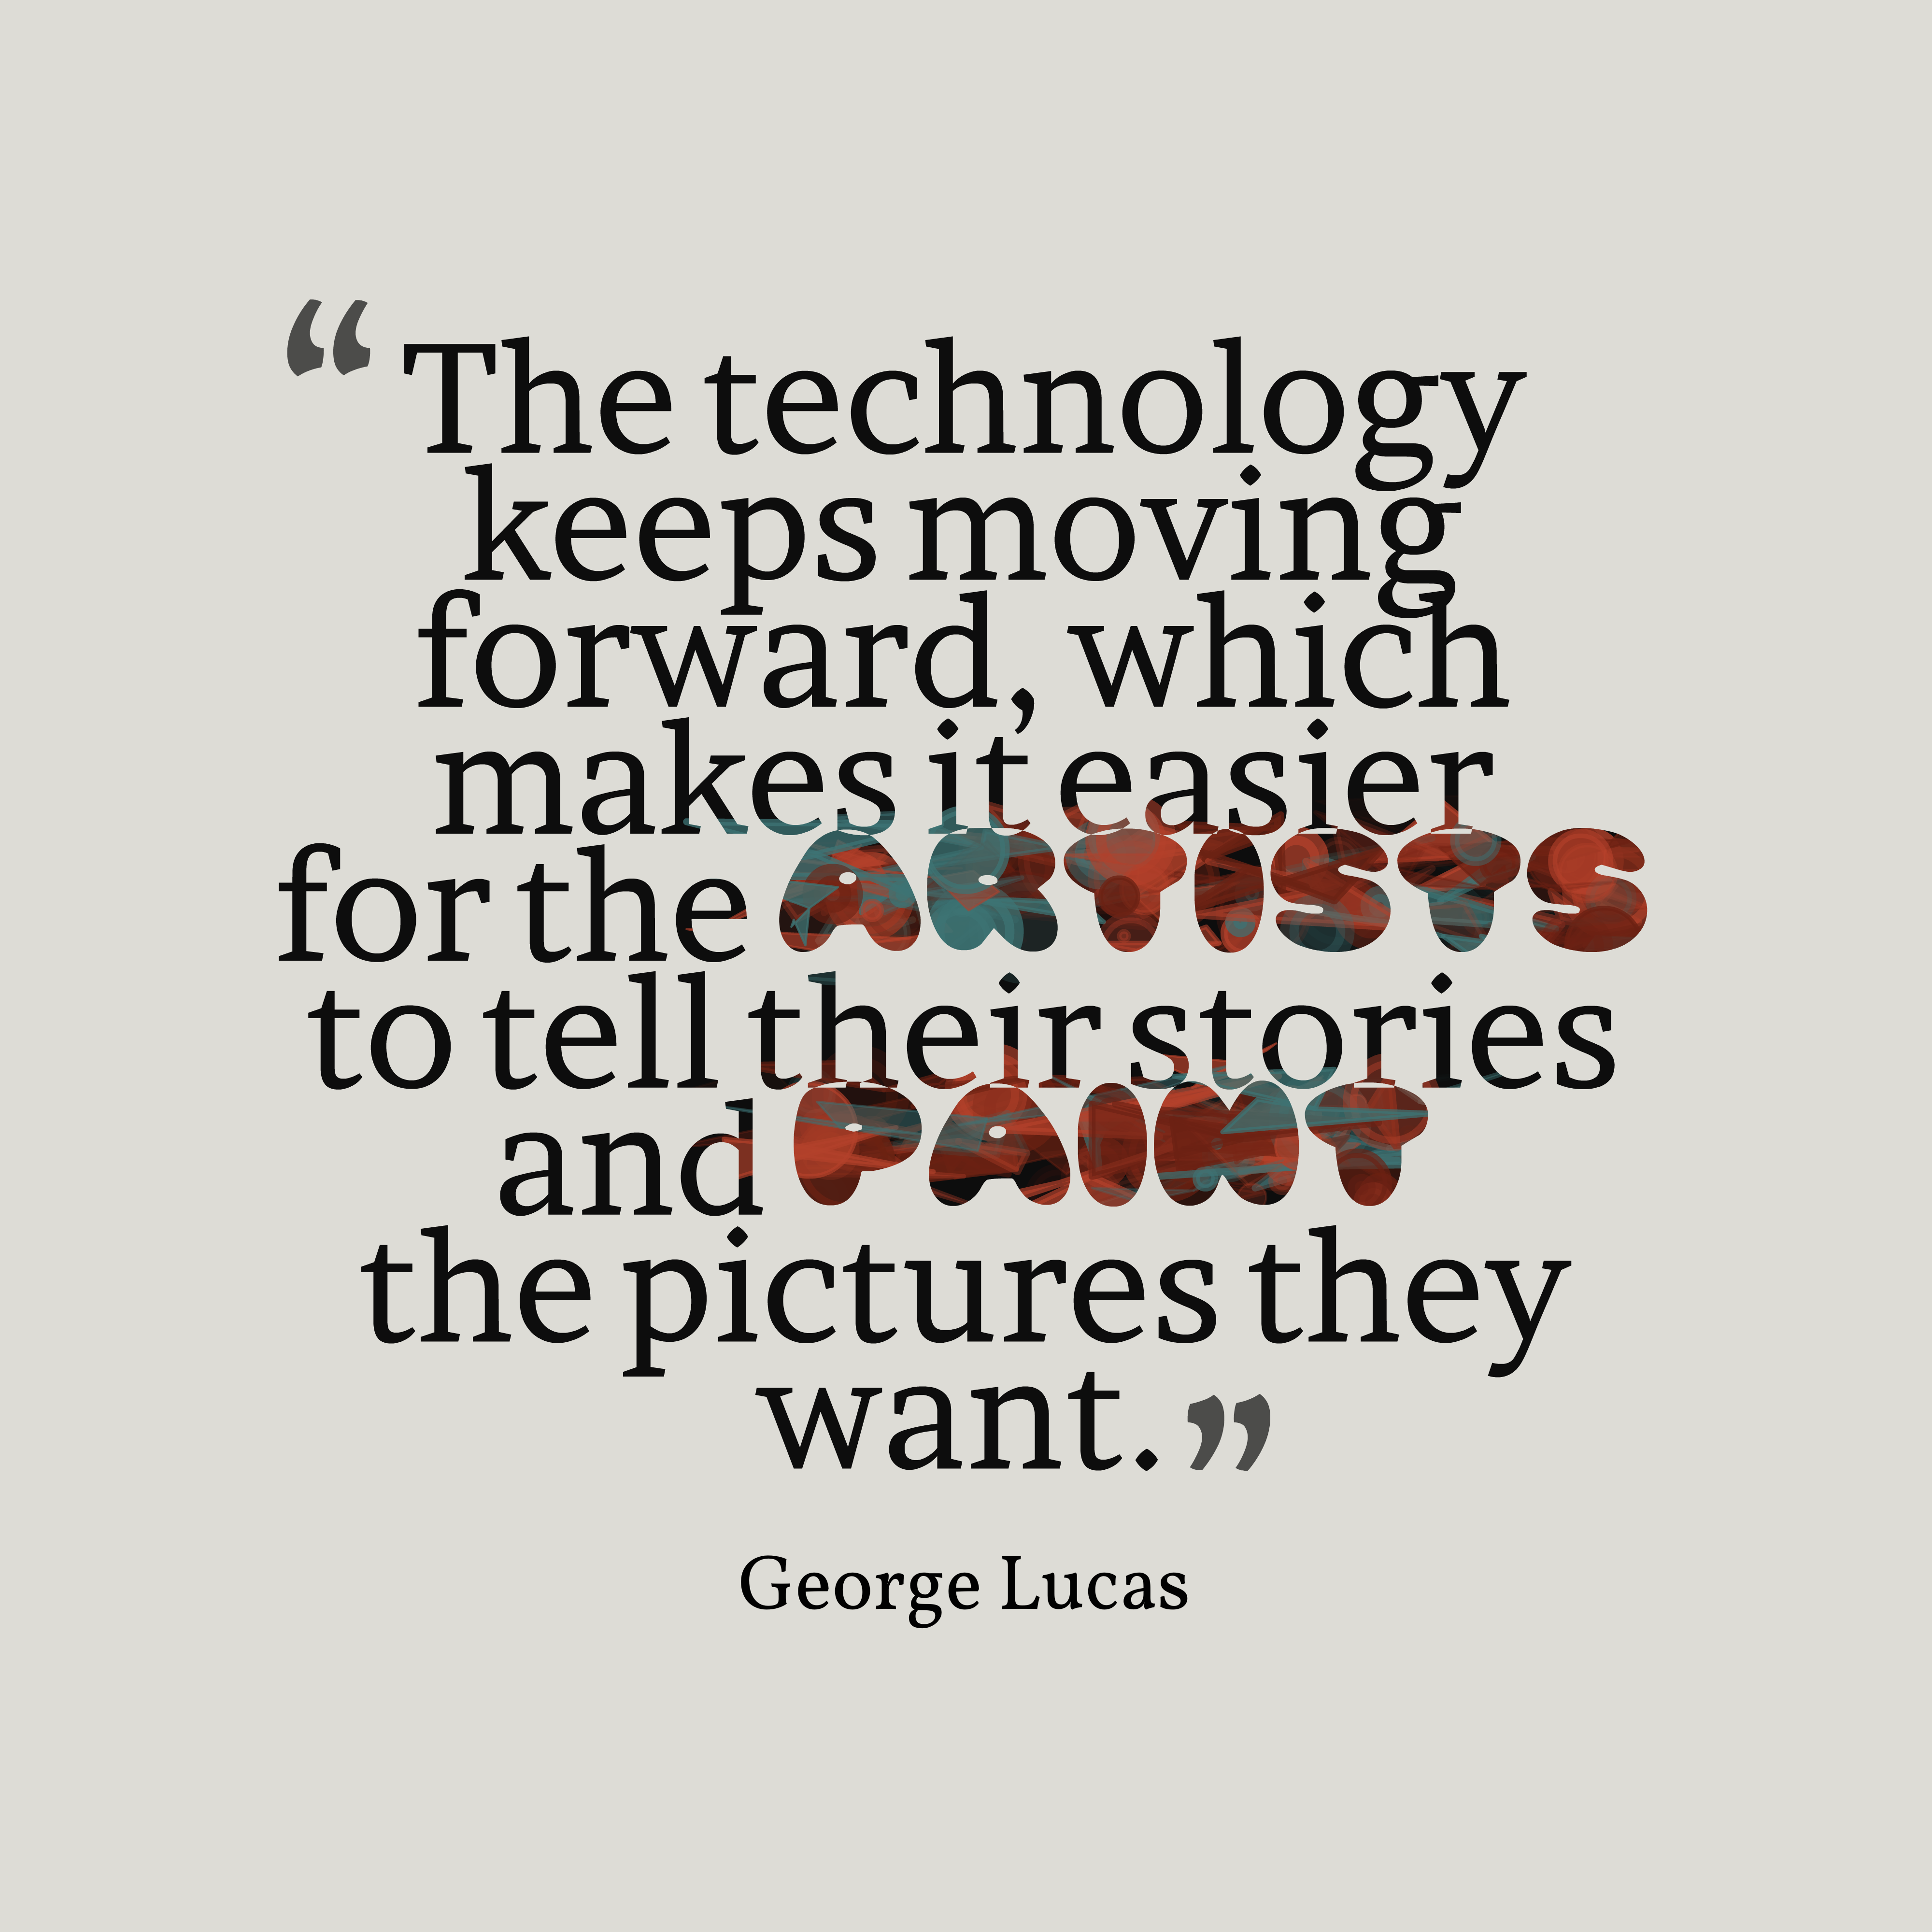 technology george lucas quotes quote forward moving